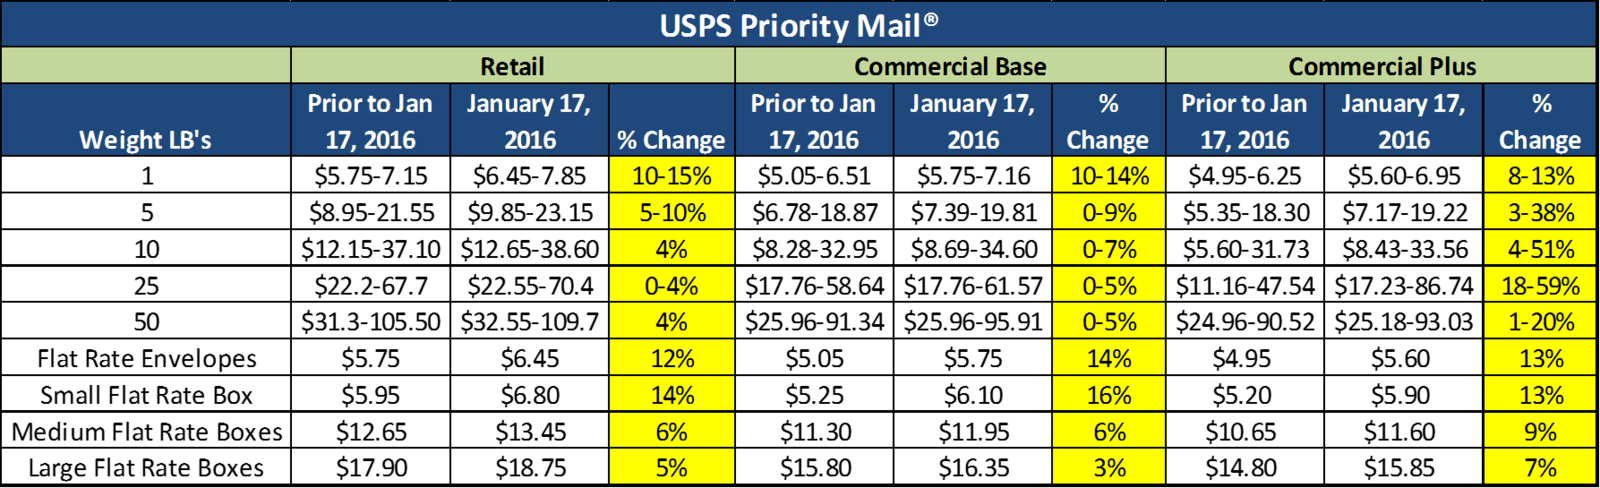 USPS Shipping Rates (Priority Mail) To Shoot Up by Over 8